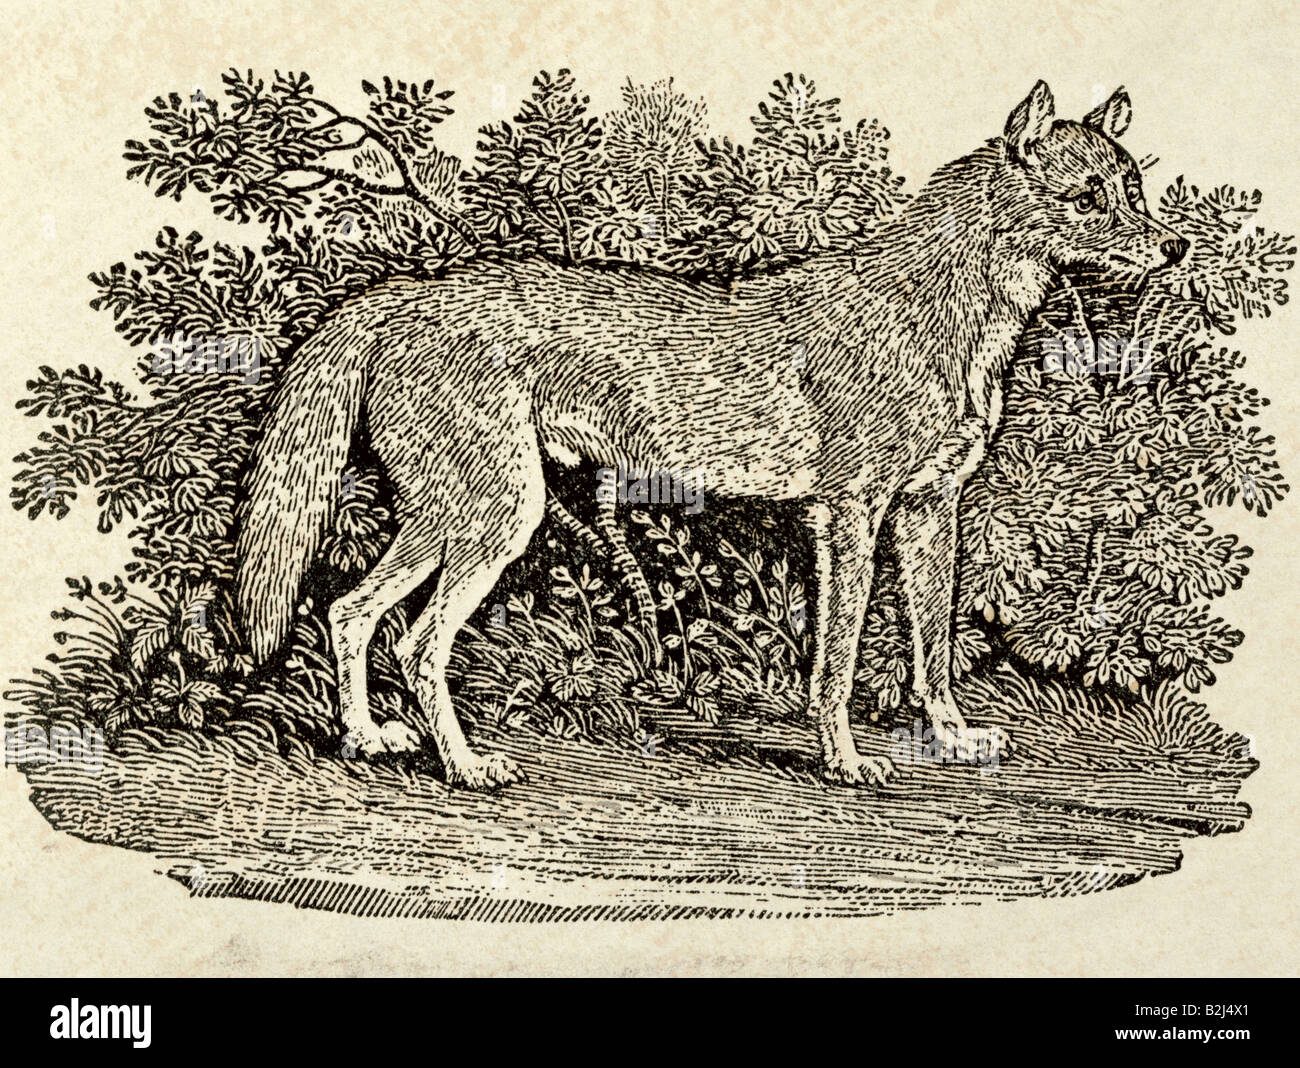 zoology / animal, mammal / mammalian, wolfs, Grey Wolf (Canis lupus), graphic, 'The Wolf', wood engraving, - Stock Image